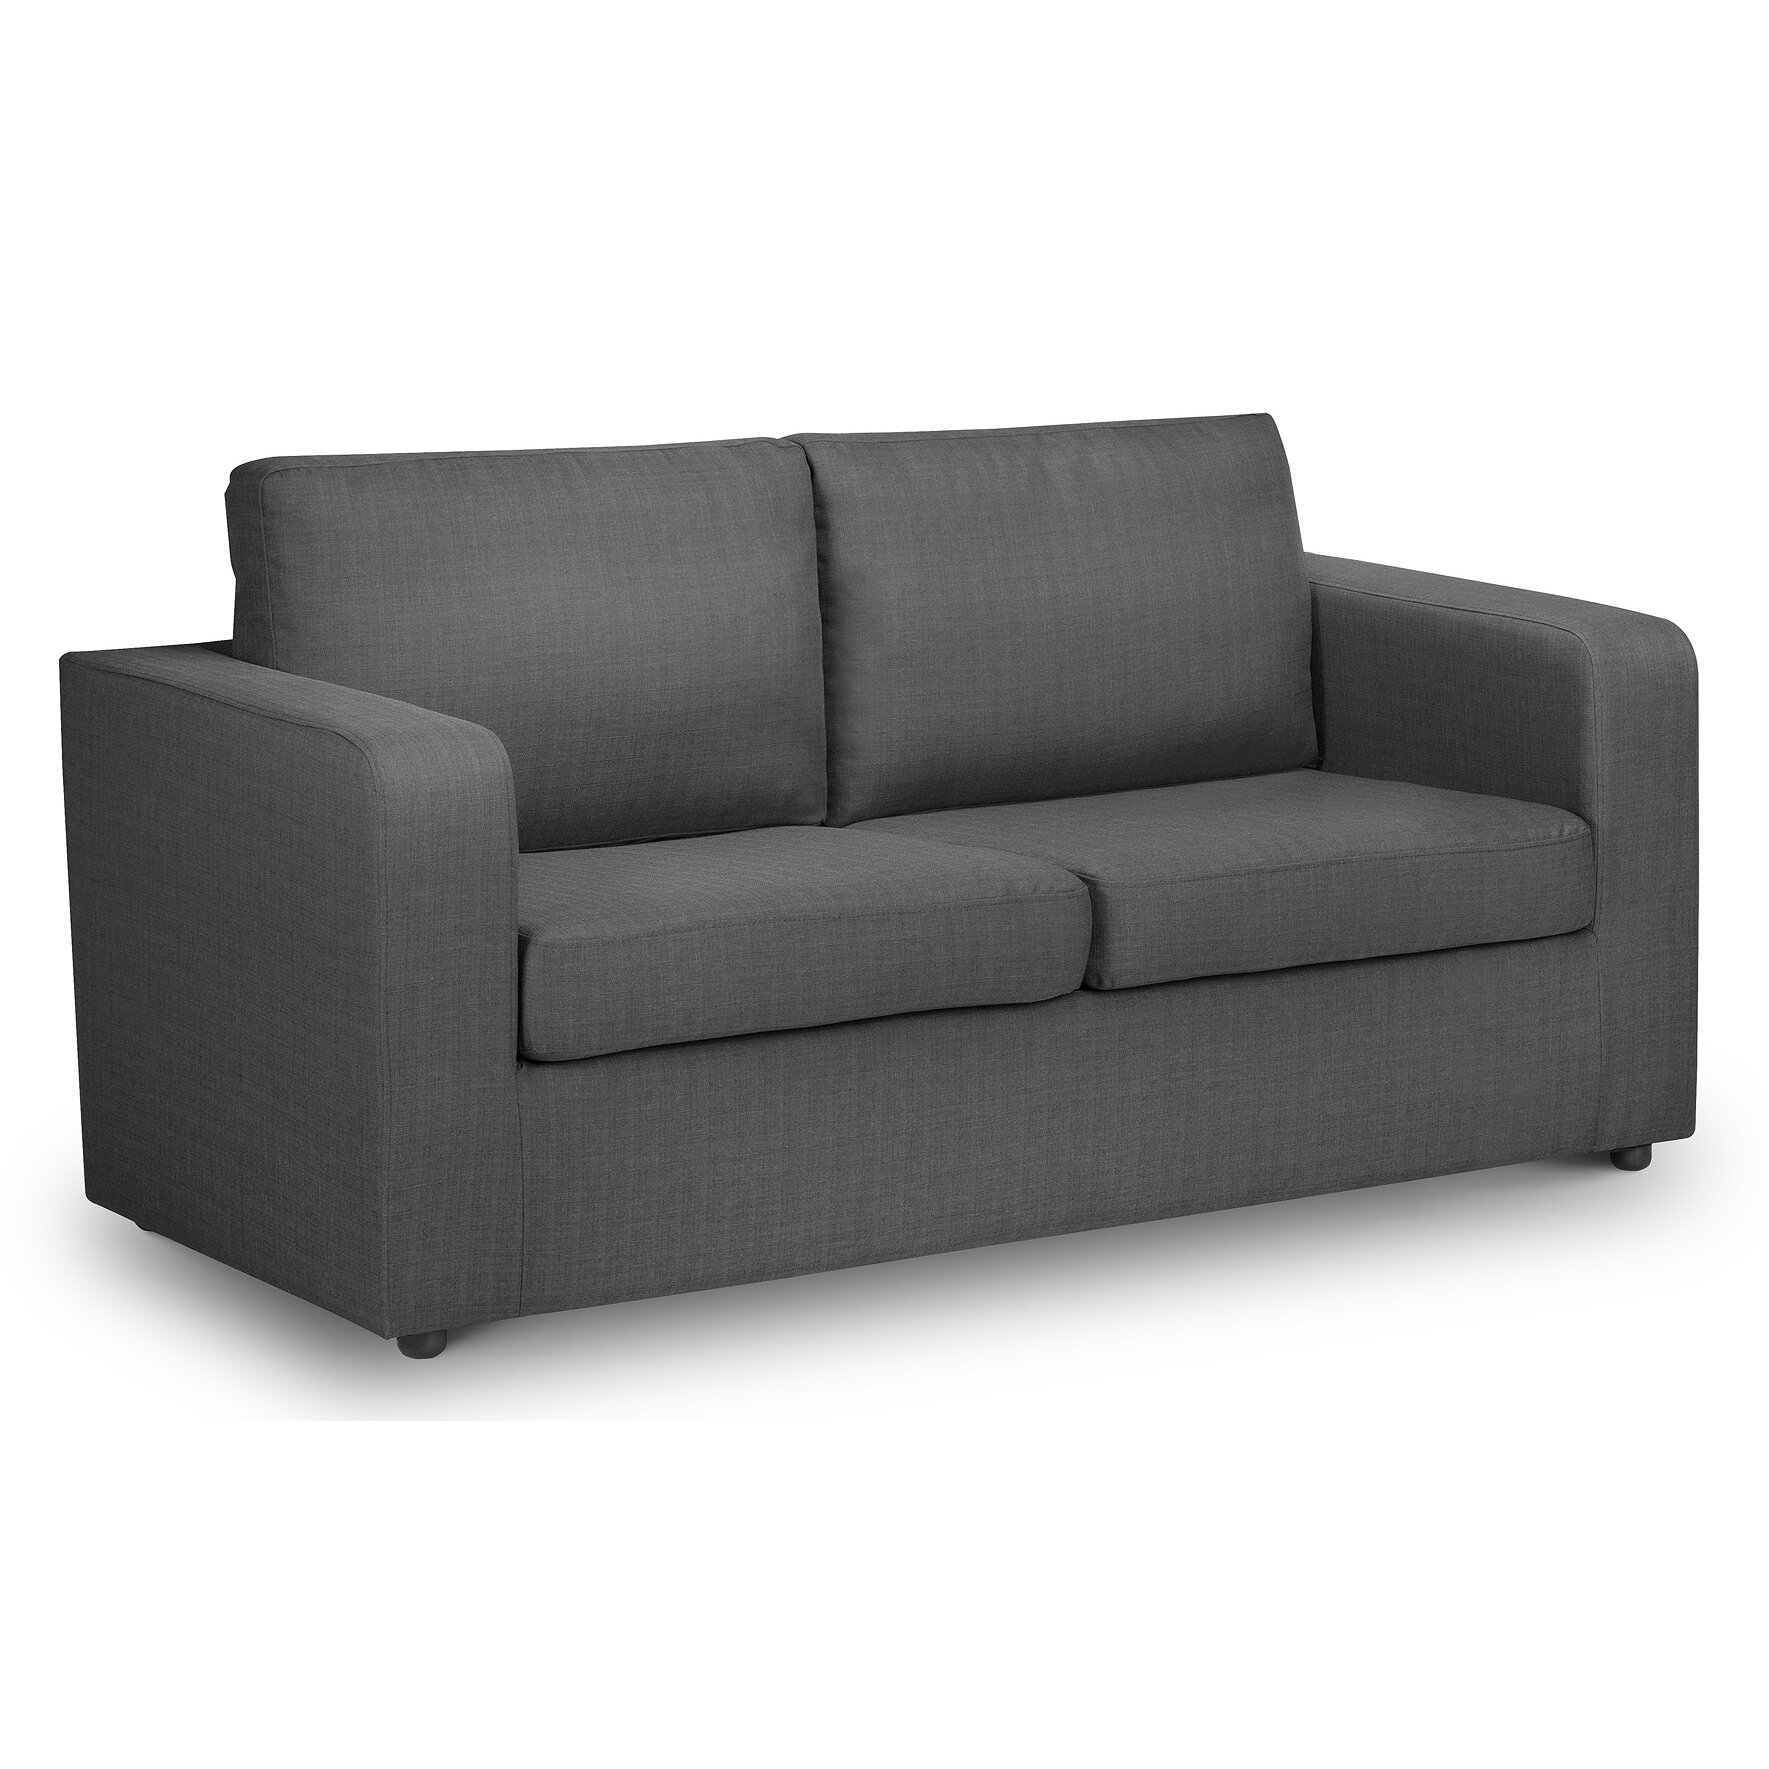 2 Seater Sofa Bed Uk Cheap